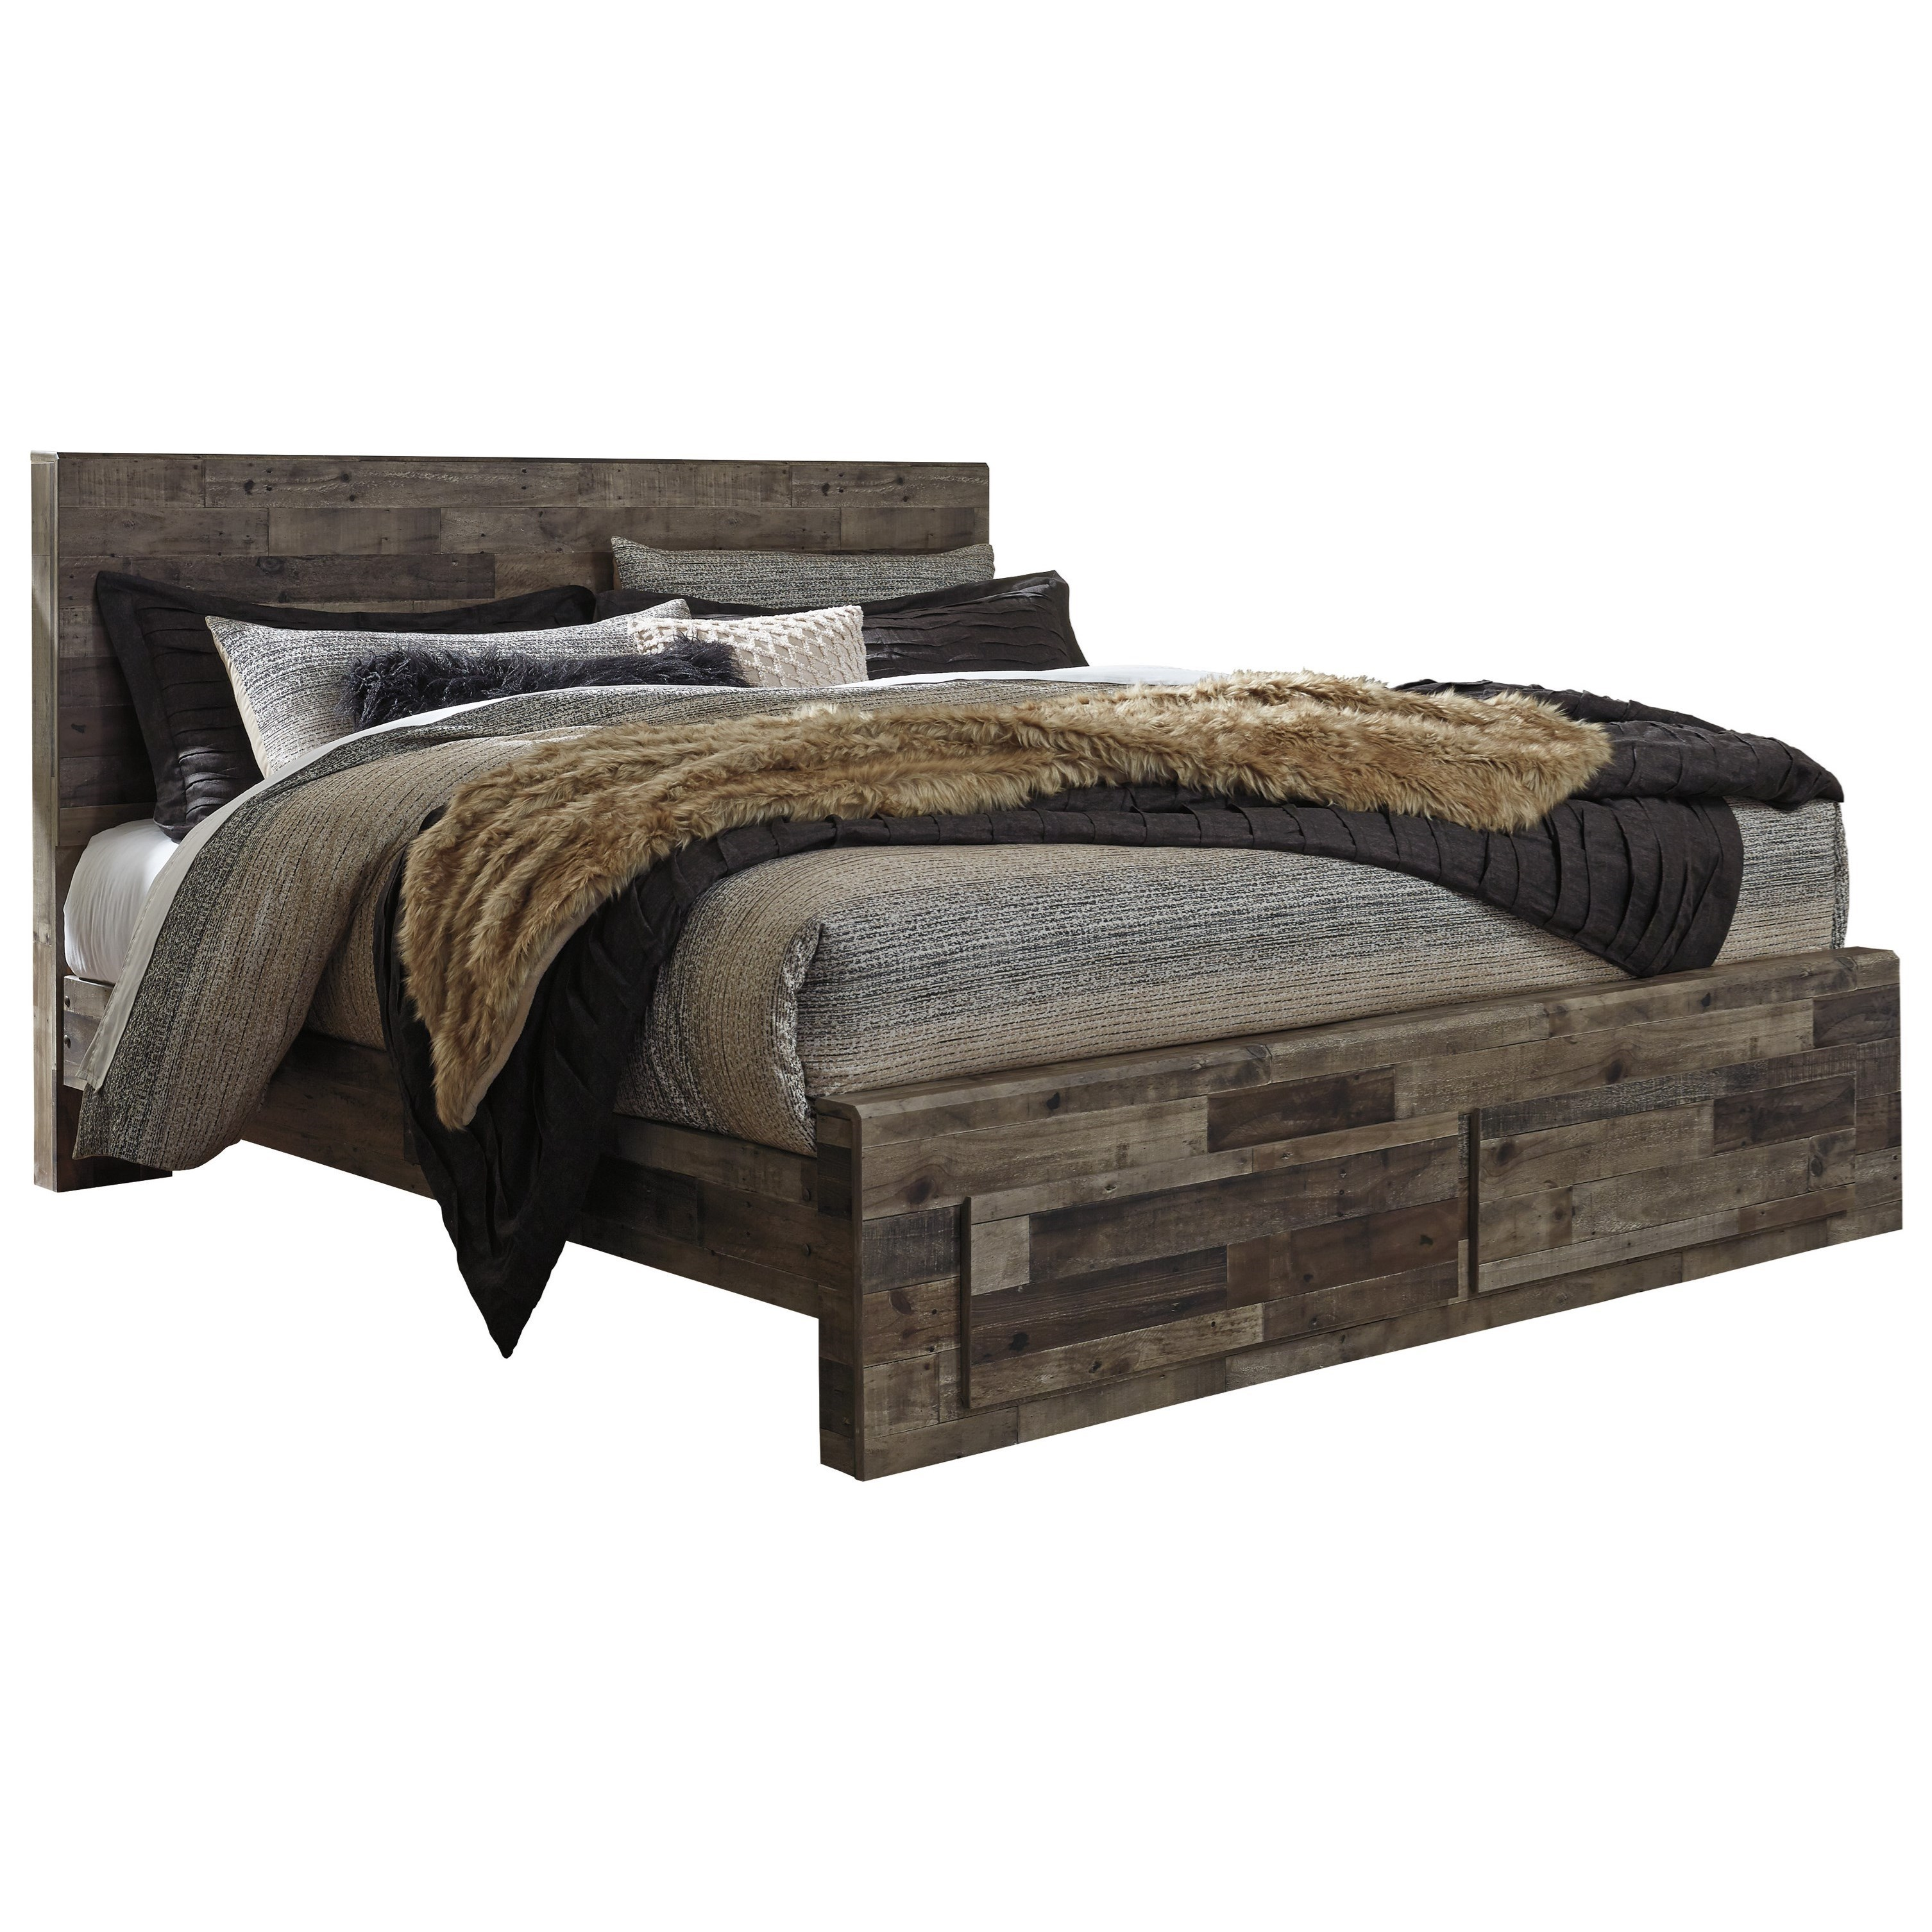 Benchcraft By Ashley Derekson Rustic Modern King Storage Bed With 2  Footboard Drawers